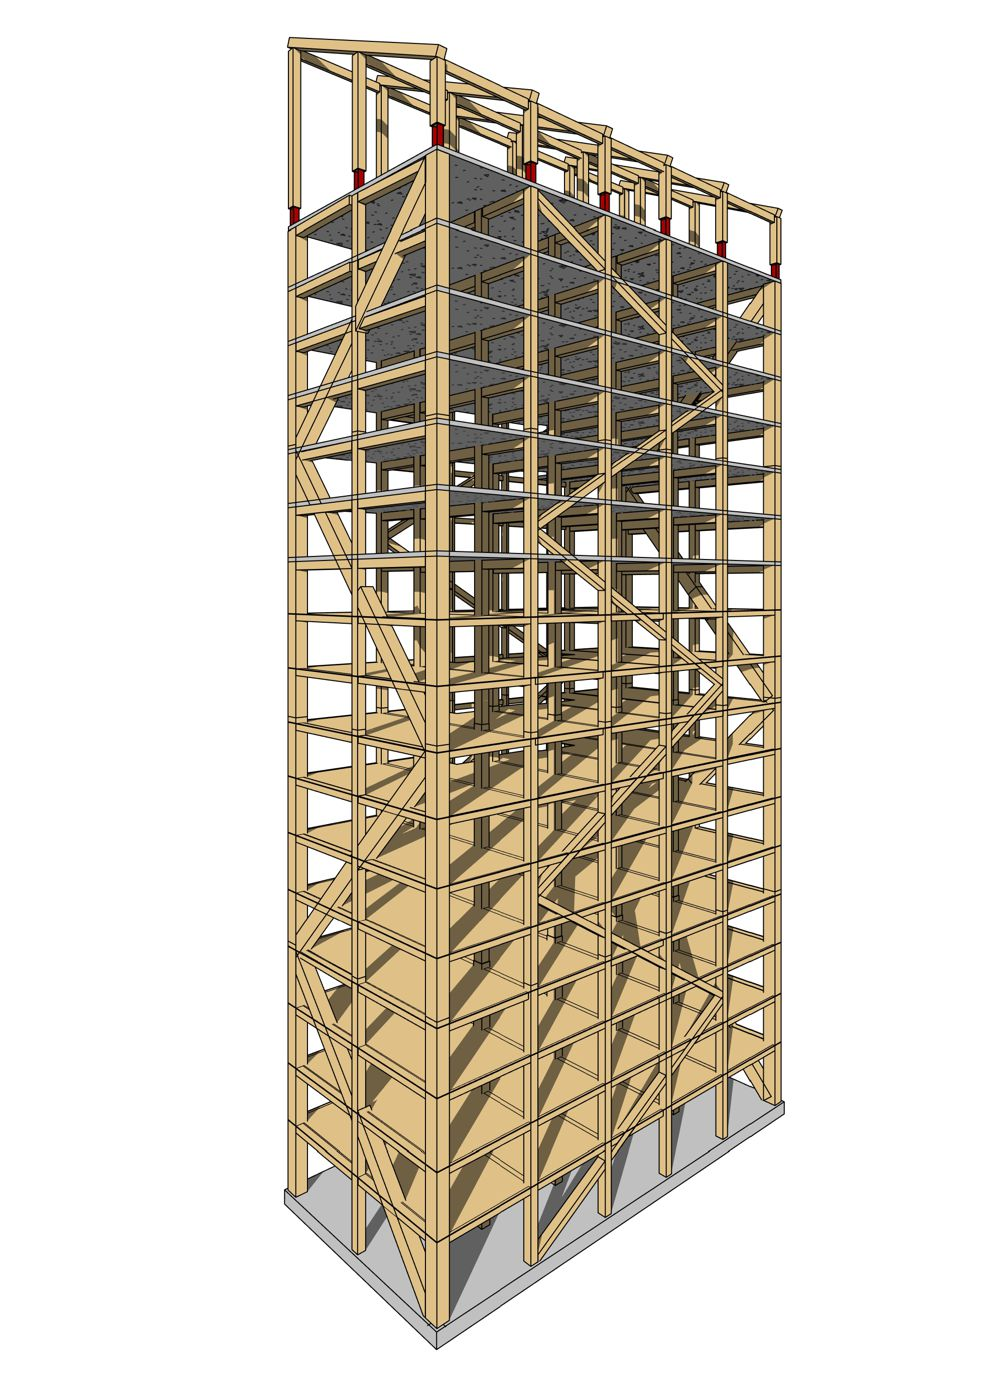 """""""Mjøstårnet"""" will be more than 80 metres tall and stand 30 metres higher than what is today considered the world's tallest timber building."""